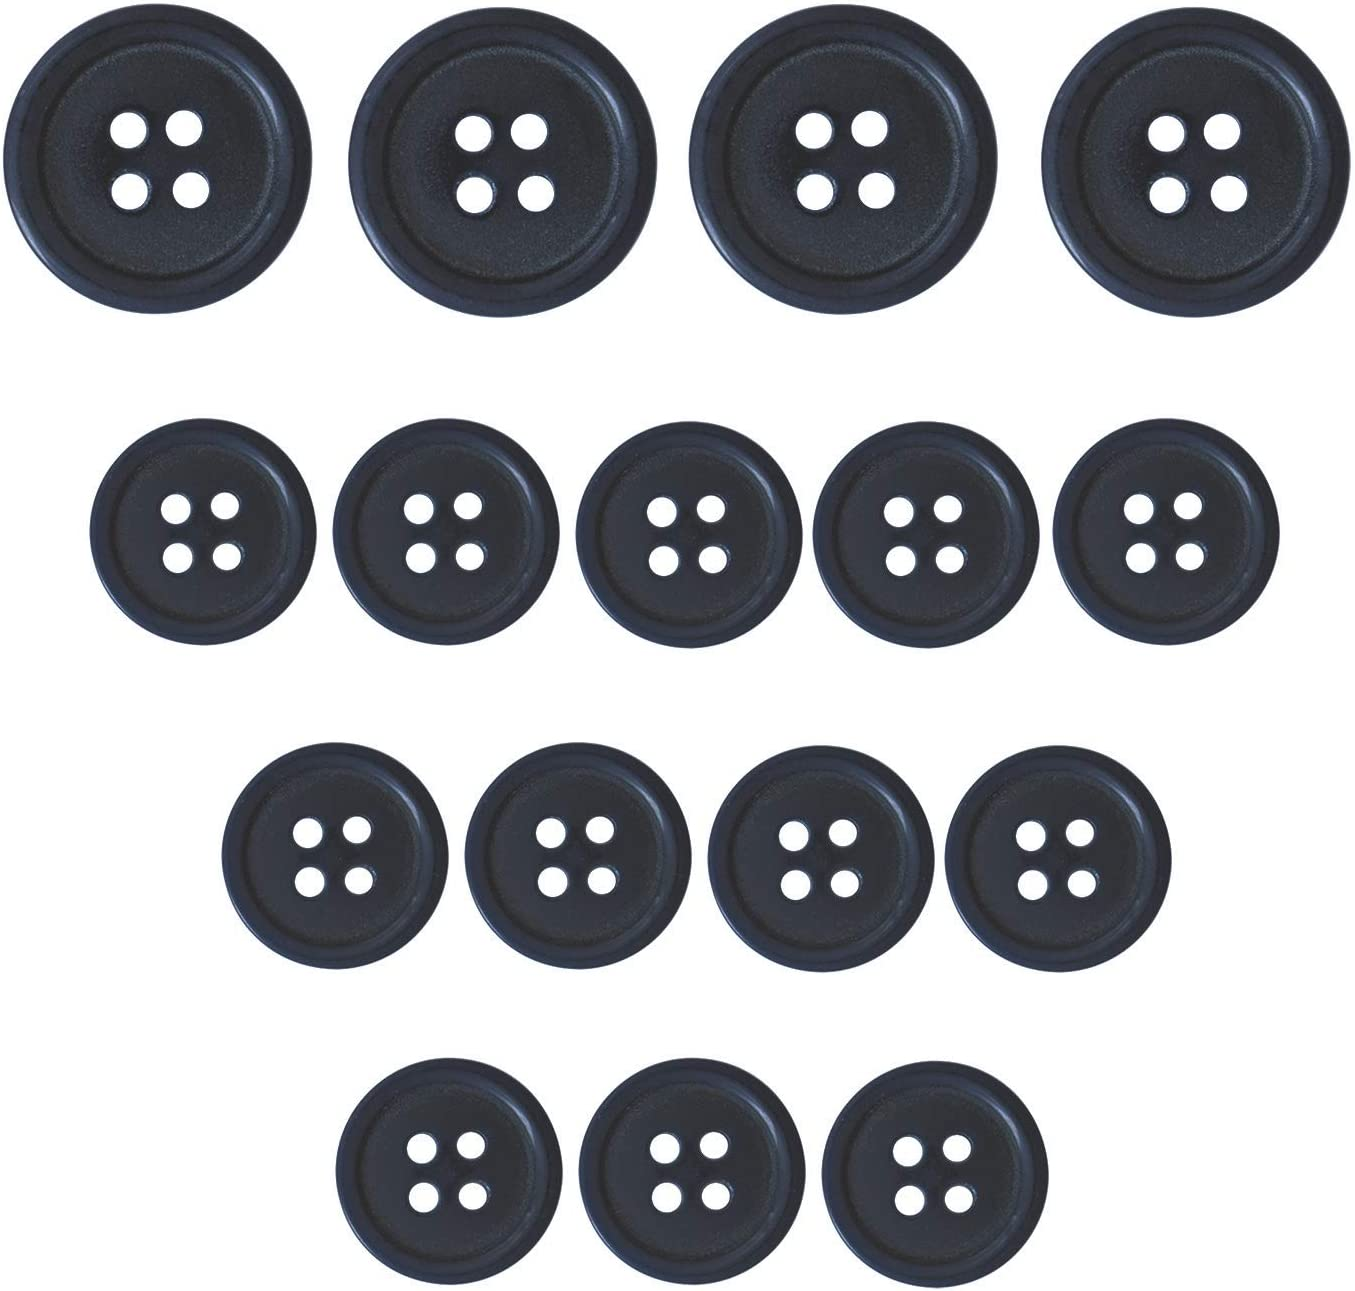 x 4 buttons 11mm Mottled White 2 Hole Button